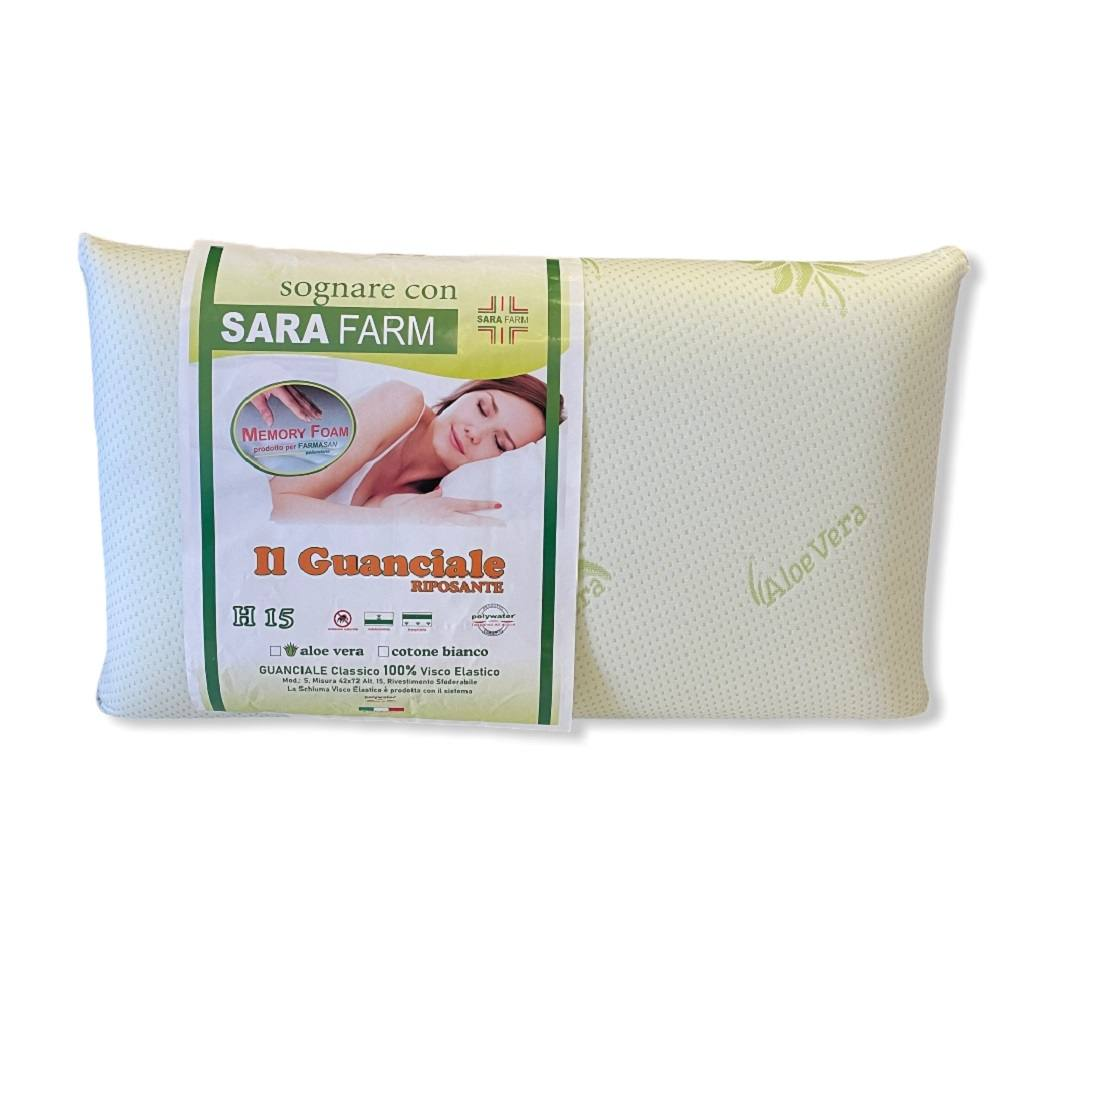 Guanciale Memory Foam Altezza Cm 15 Made In Italy Federa In Aloe